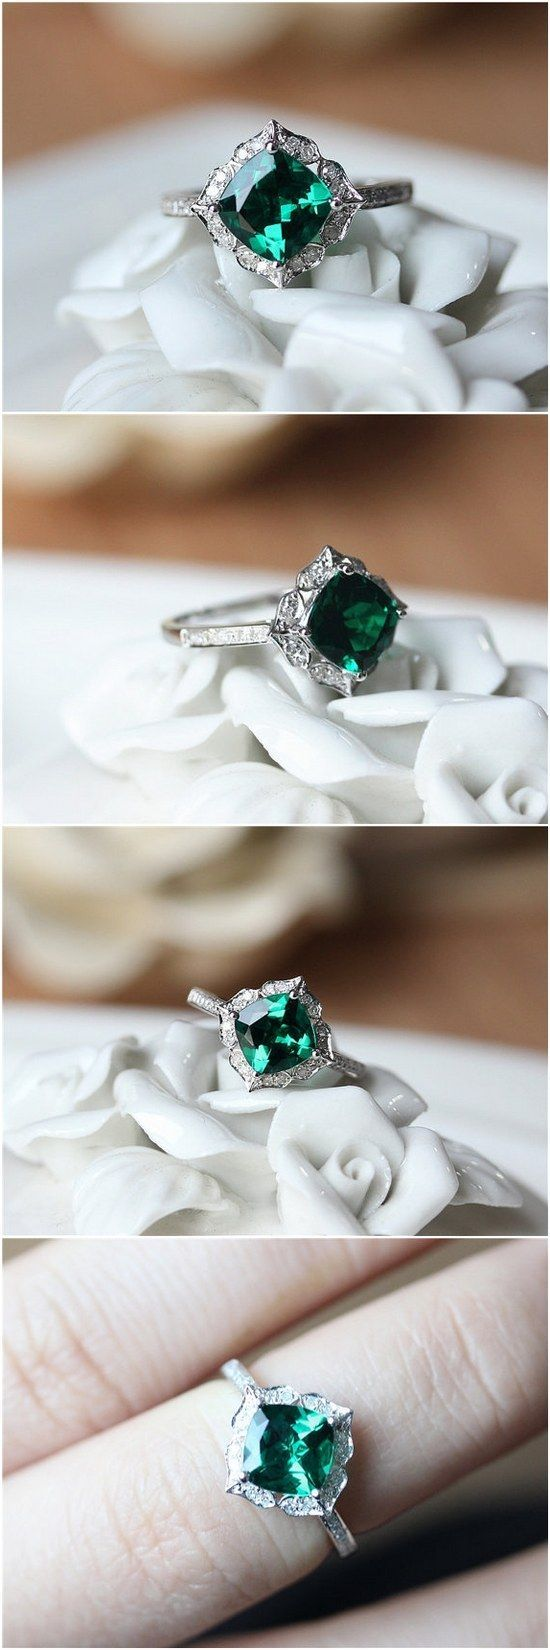 7mm Cushion Cut Emerald Engagement Ring / http://www.deerpearlflowers.com/inexpensive-engagement-rings-under-1000/2/ #weddingring